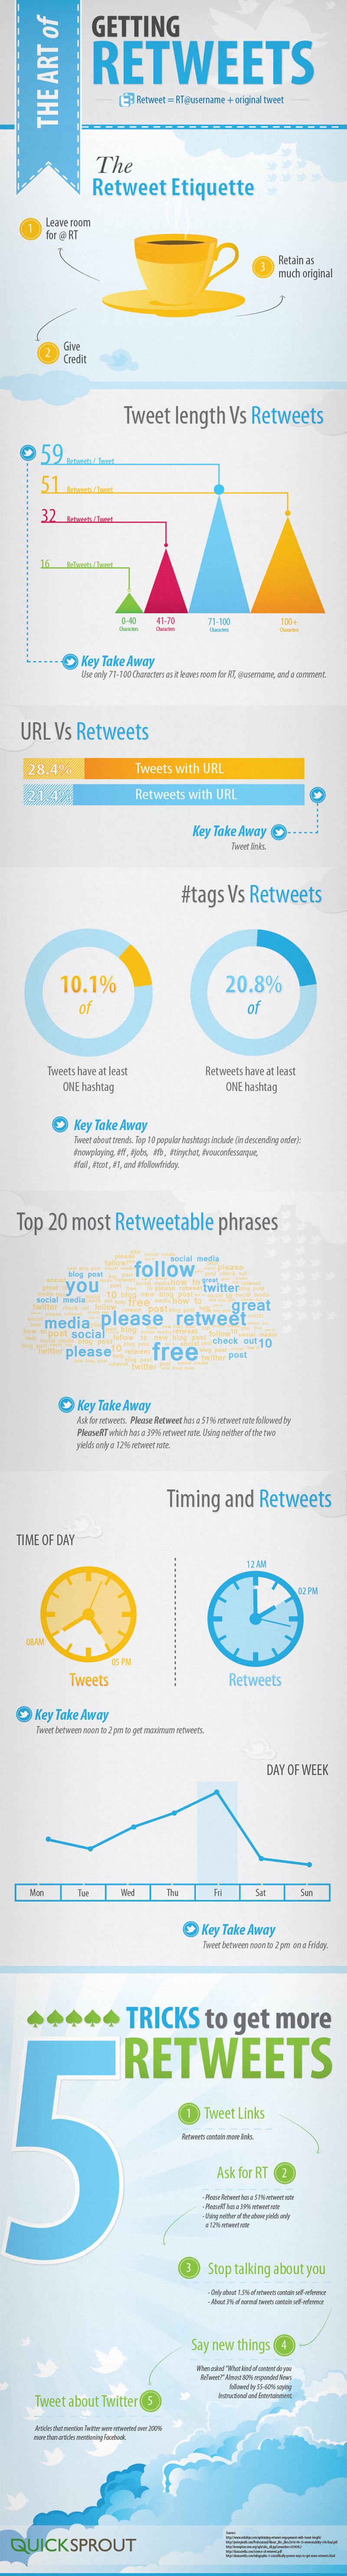 Twitter Etiquette and Increasing Retweets